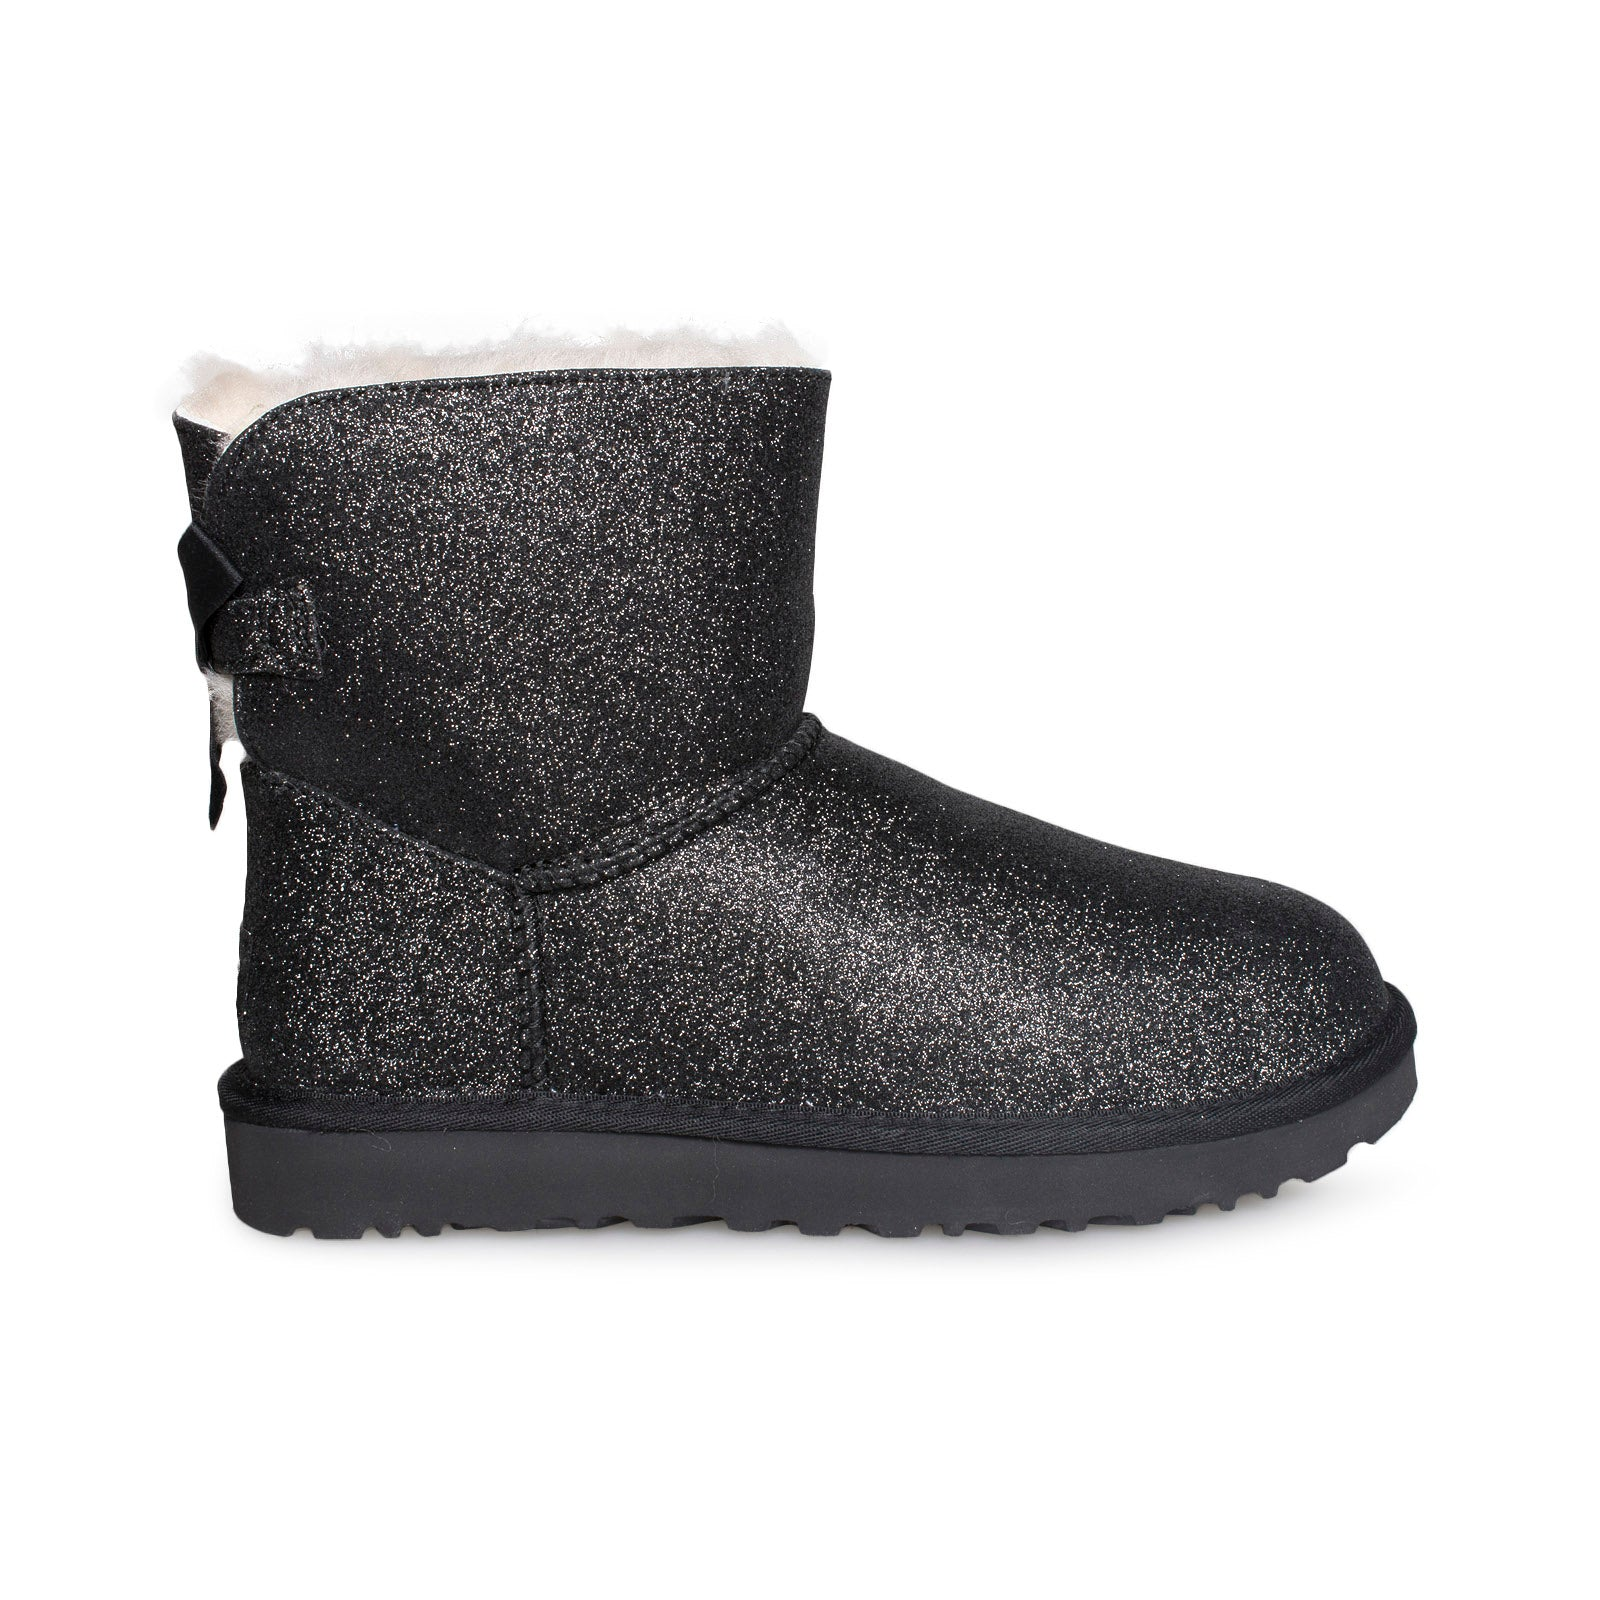 eb20e32c9bb UGG Mini Bailey Bow Sparkle Black Boots - Women's